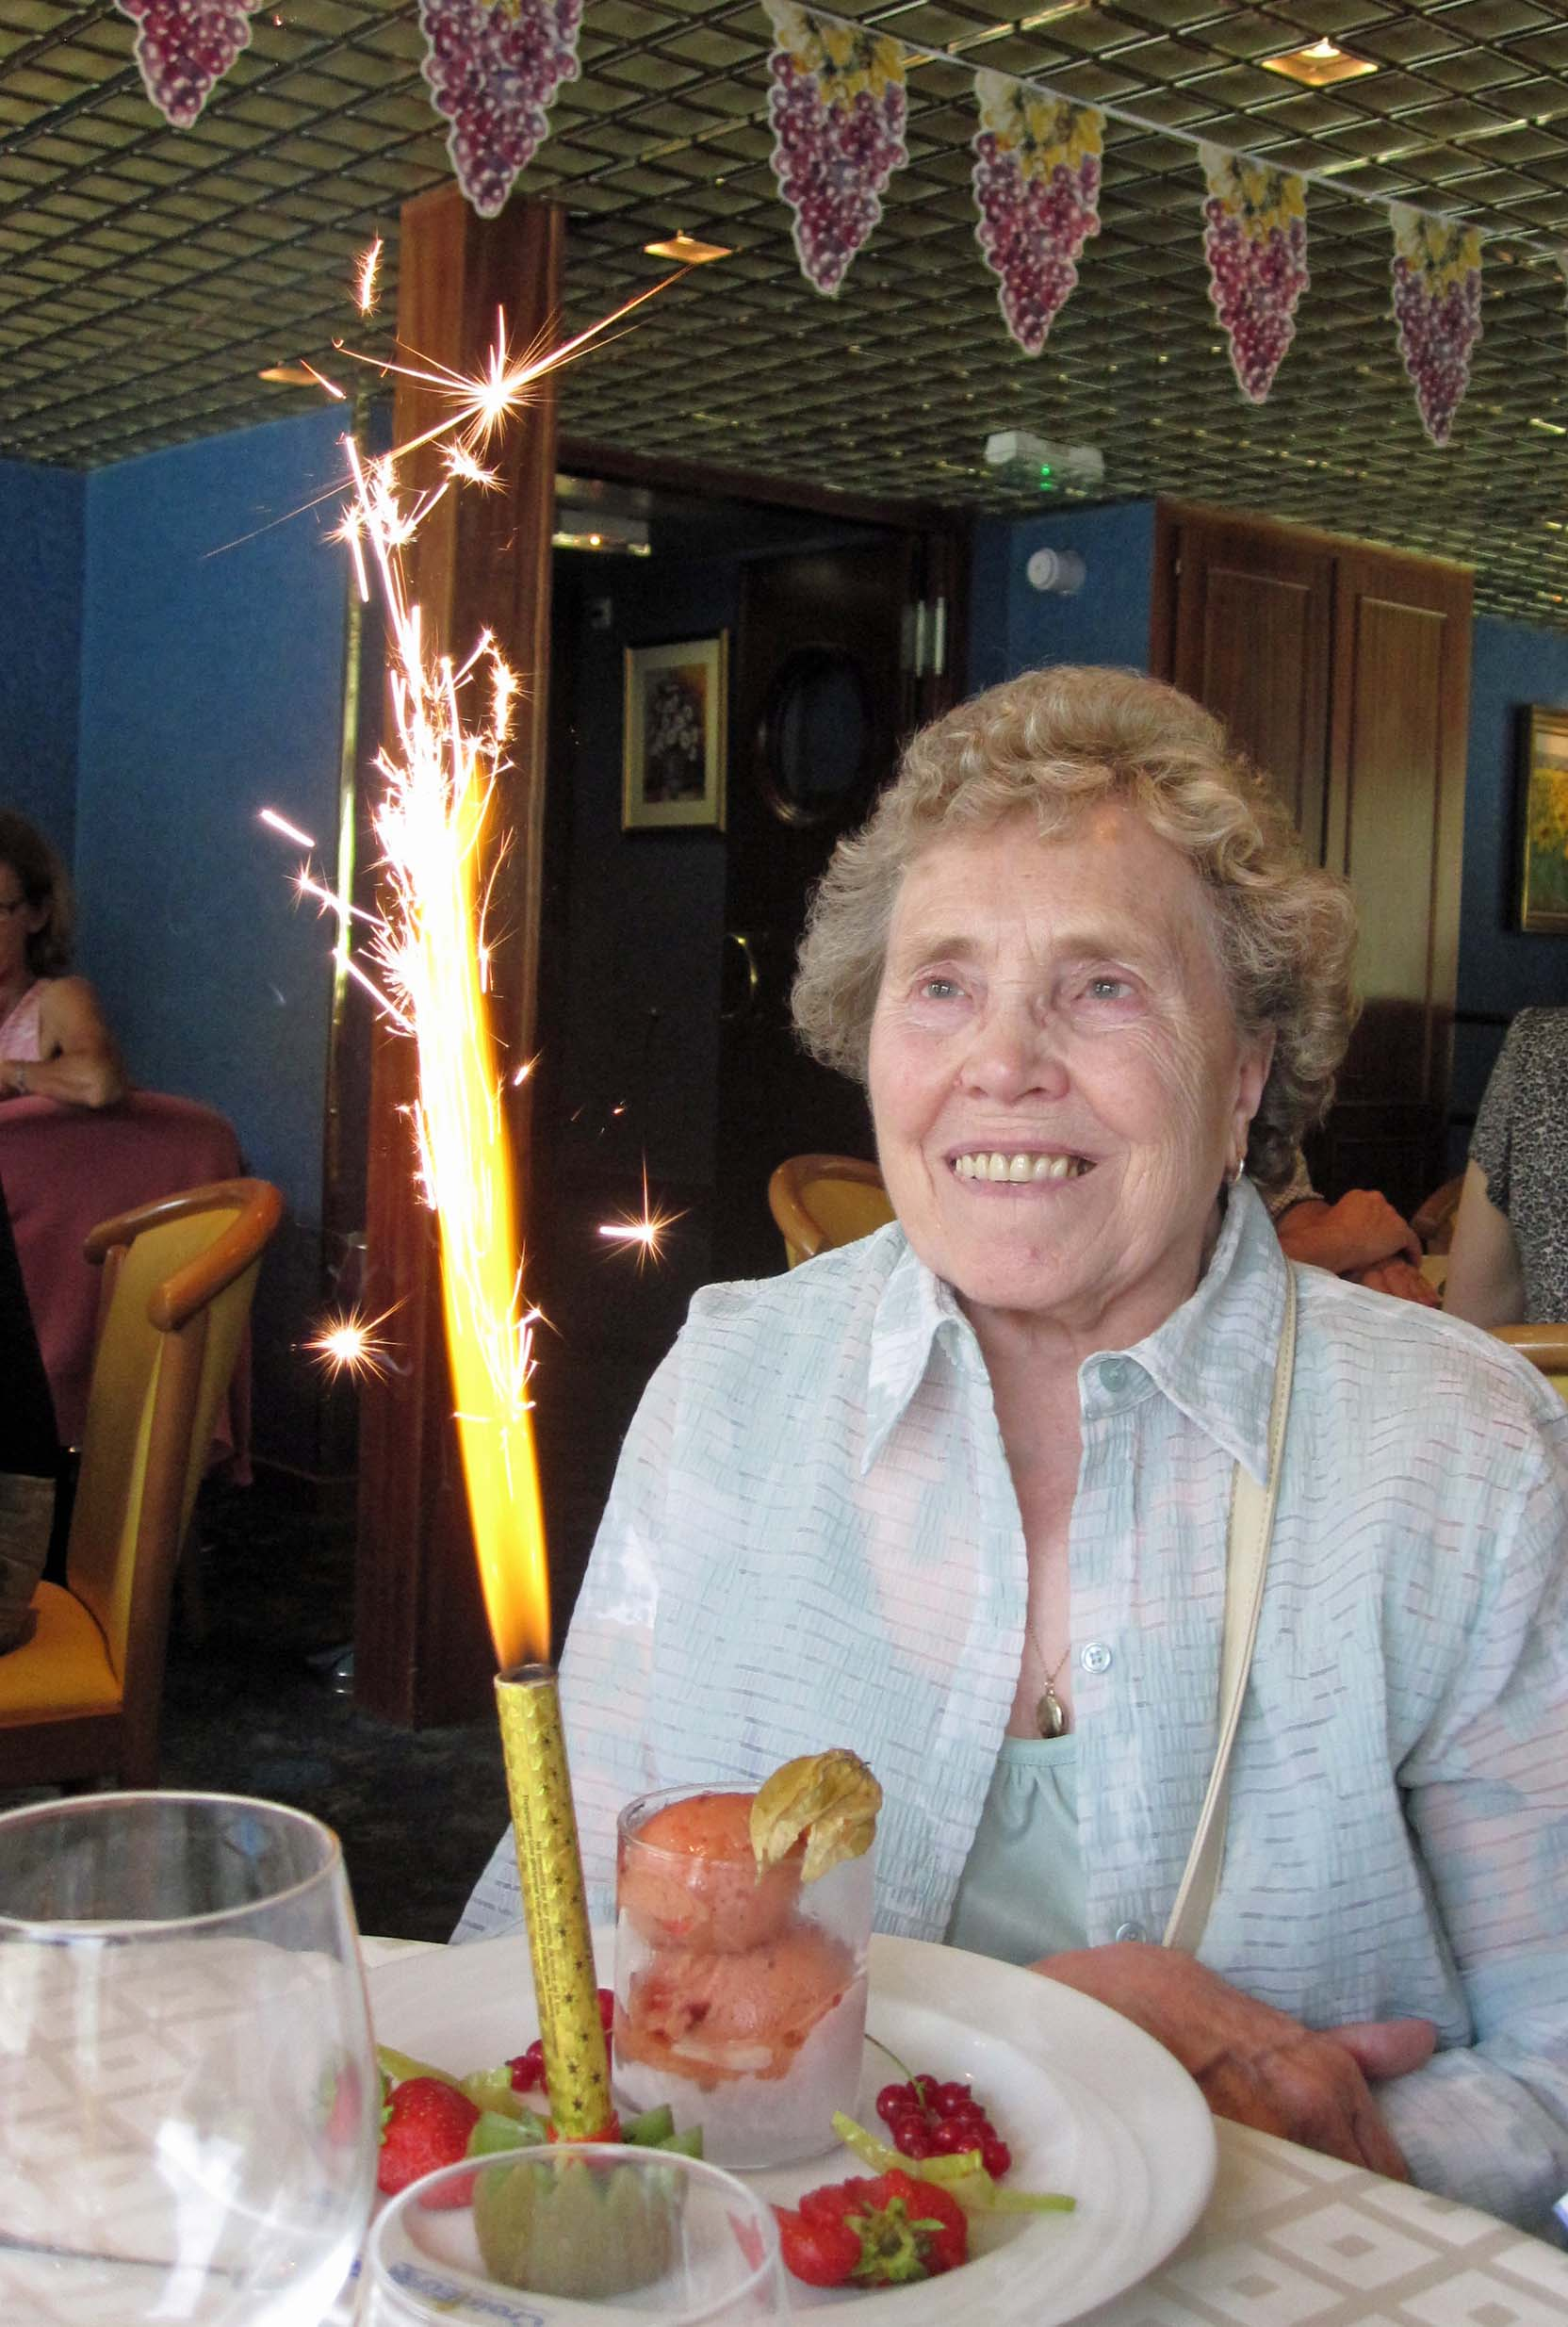 Lady with a dessert and sparkler